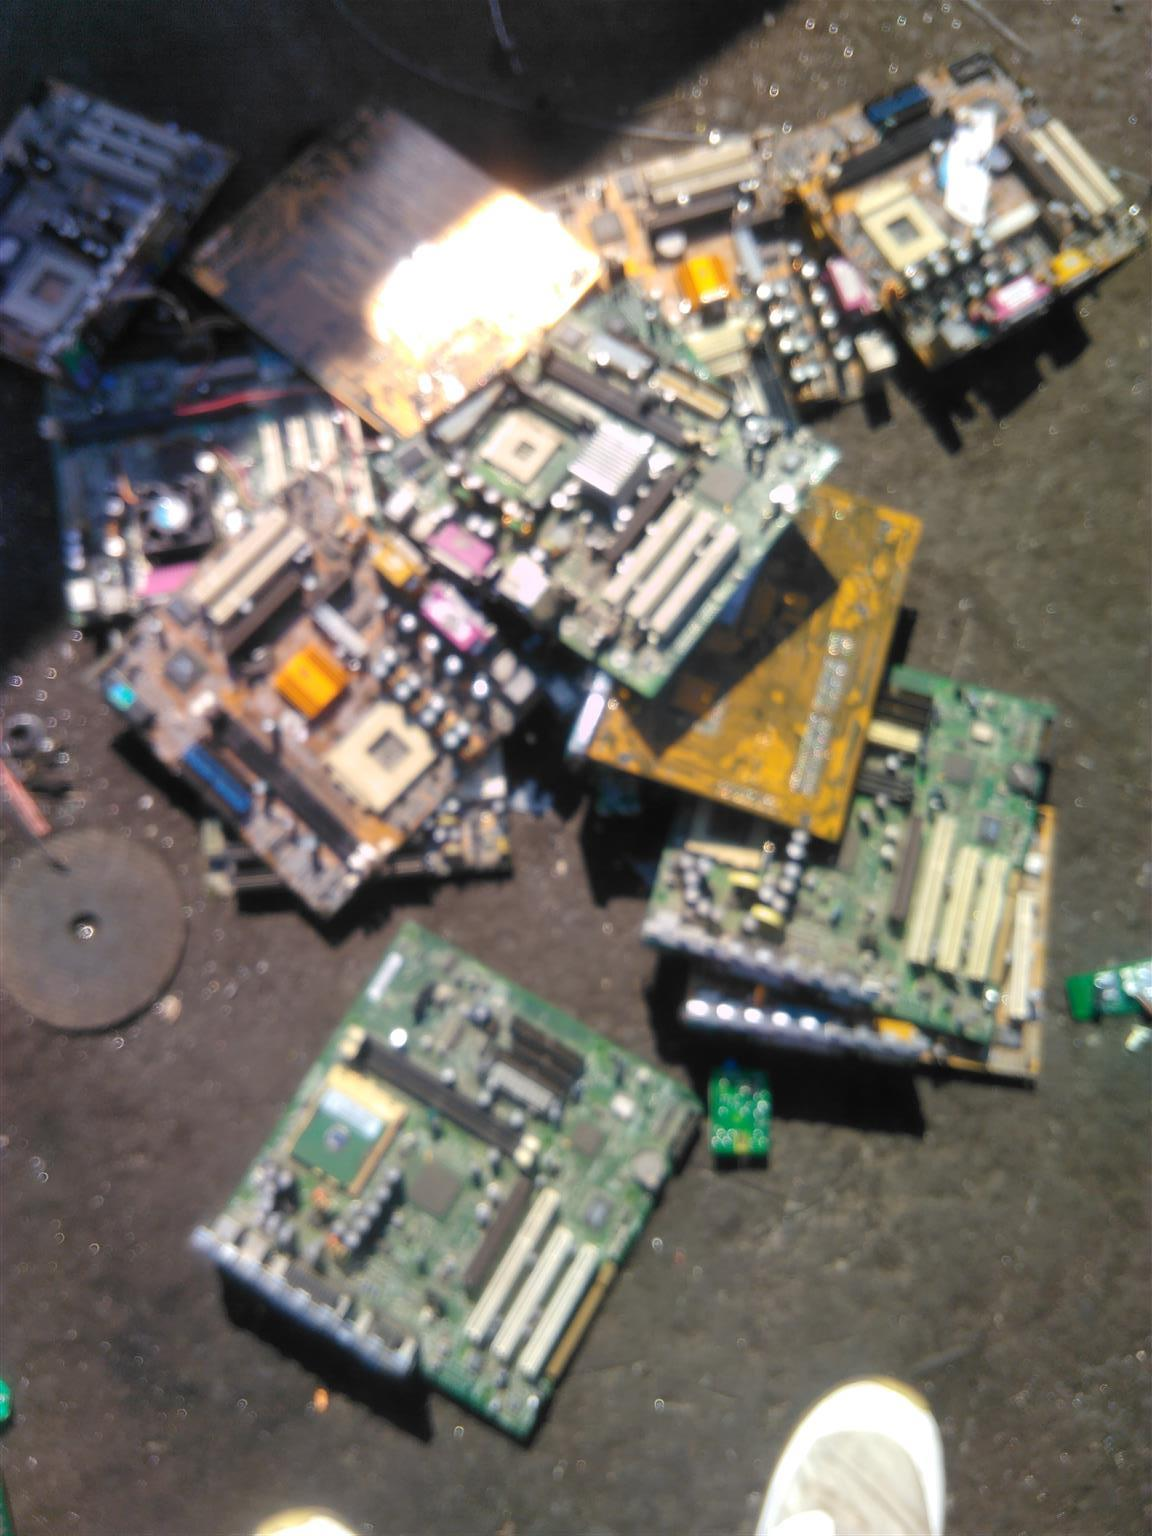 We buy and recycle all scrapped electronics components for cash, call us today.